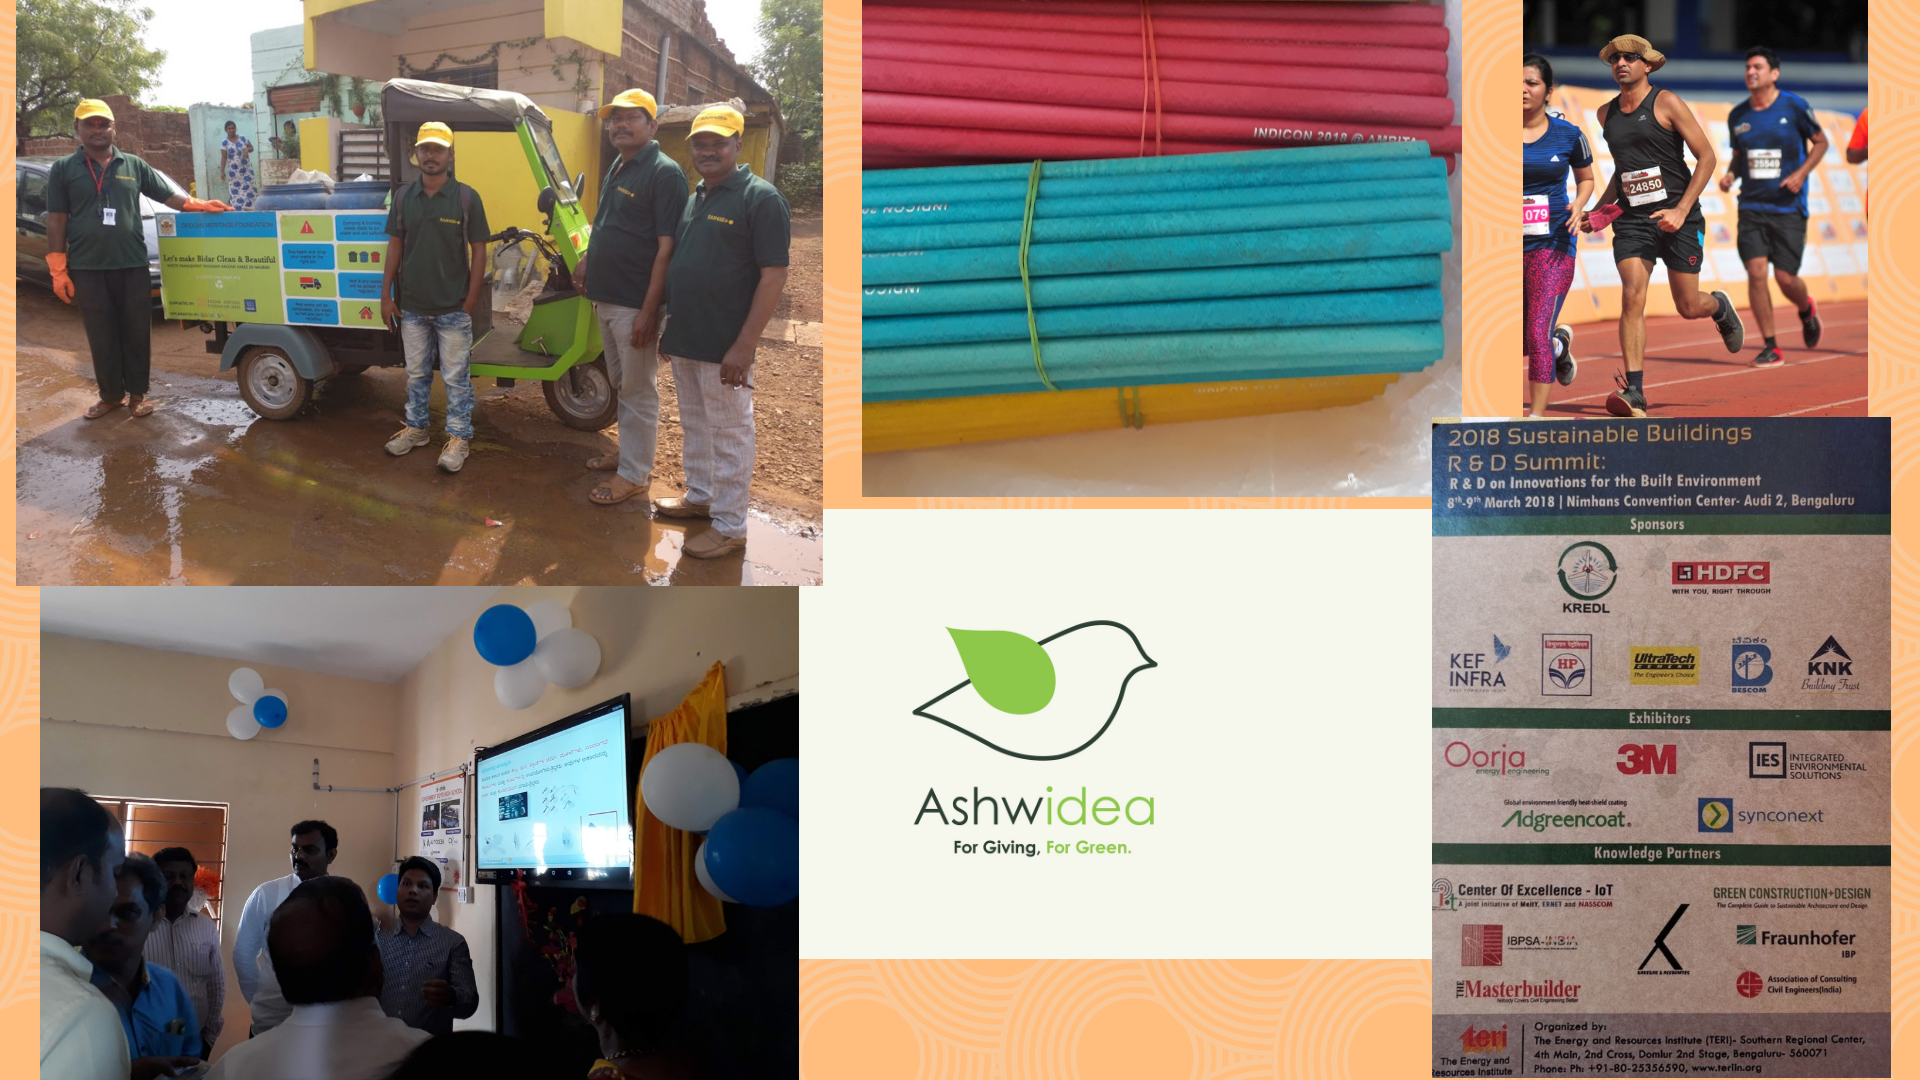 2018 waste recycled education running